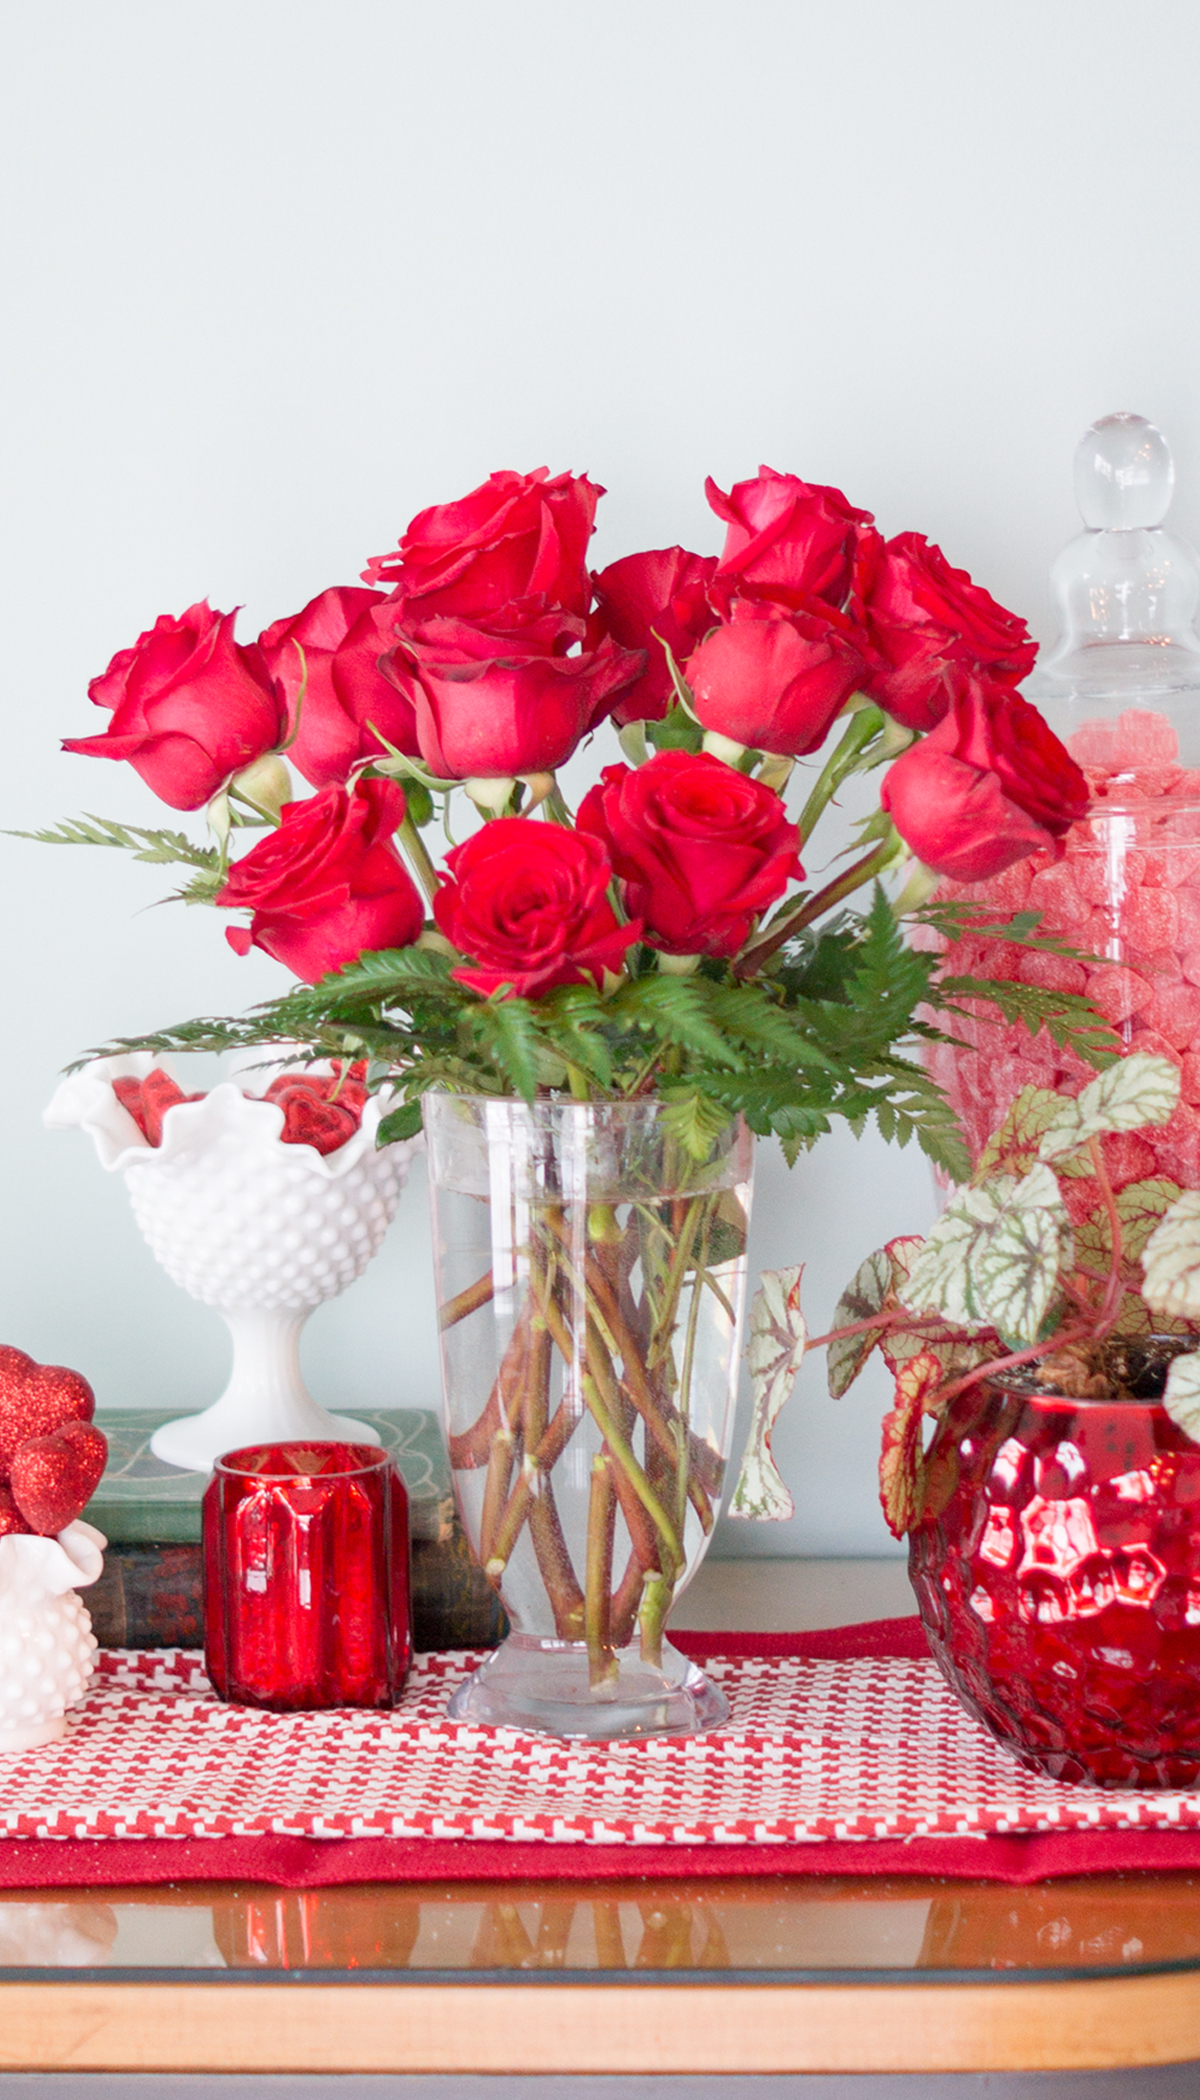 How to arrange fresh flowers